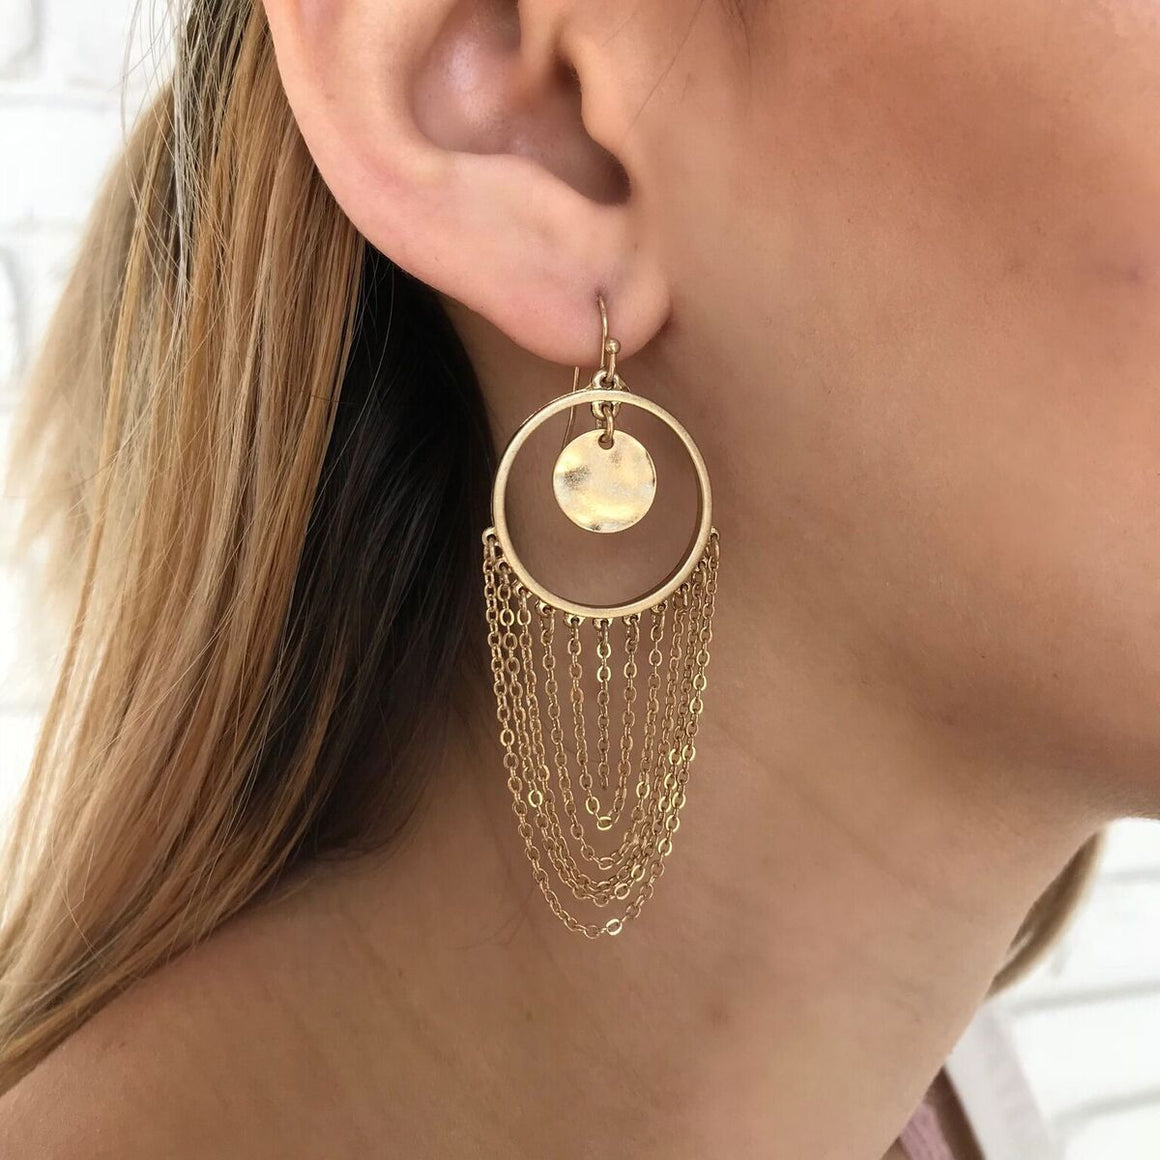 Hoop & Chain Earrings in Gold - Dainty Hooligan